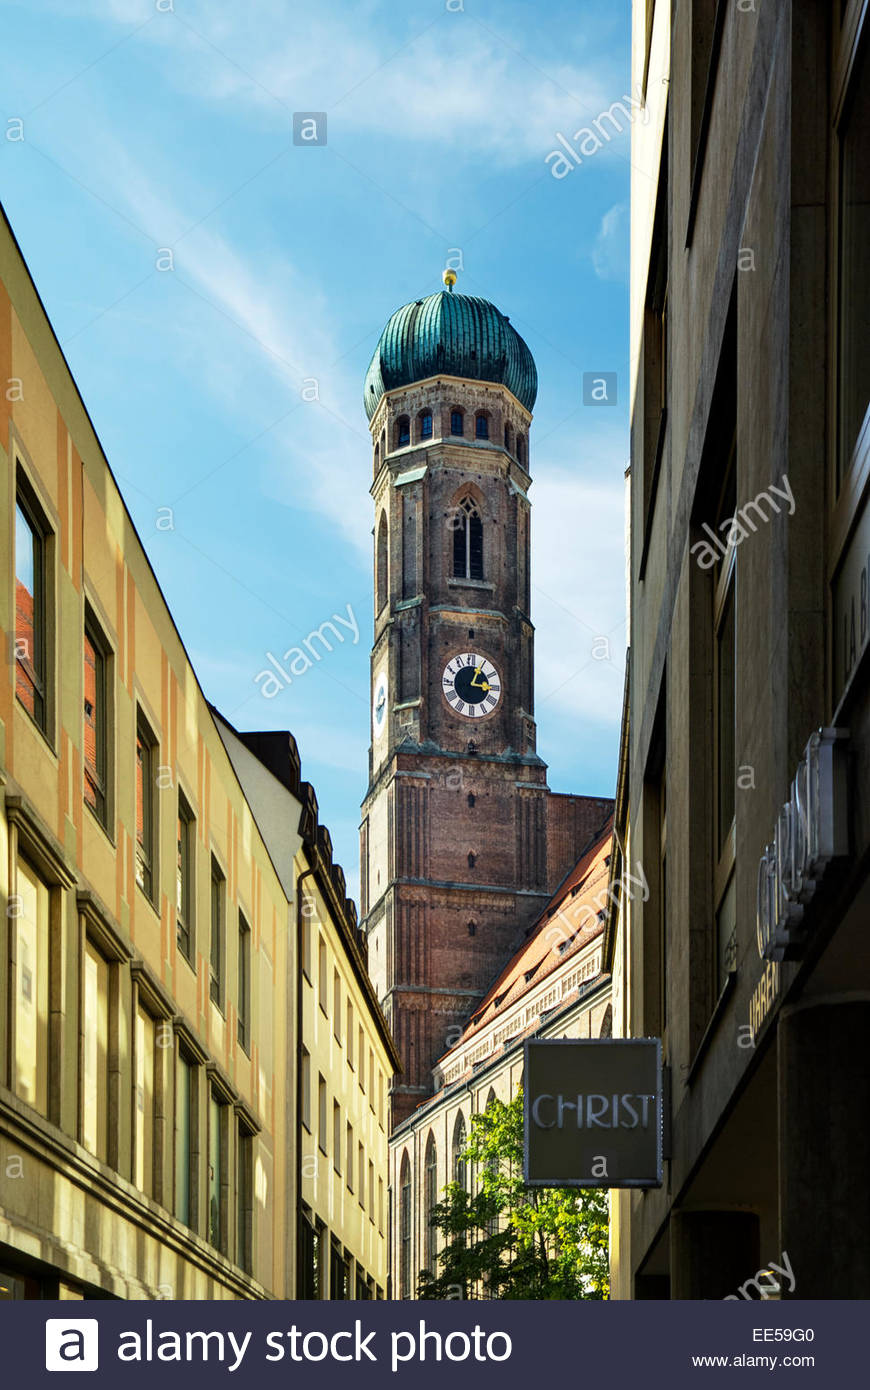 Onion dome tower of the Frauenkirche Dom in München / Munich, Germany. - Stock Image